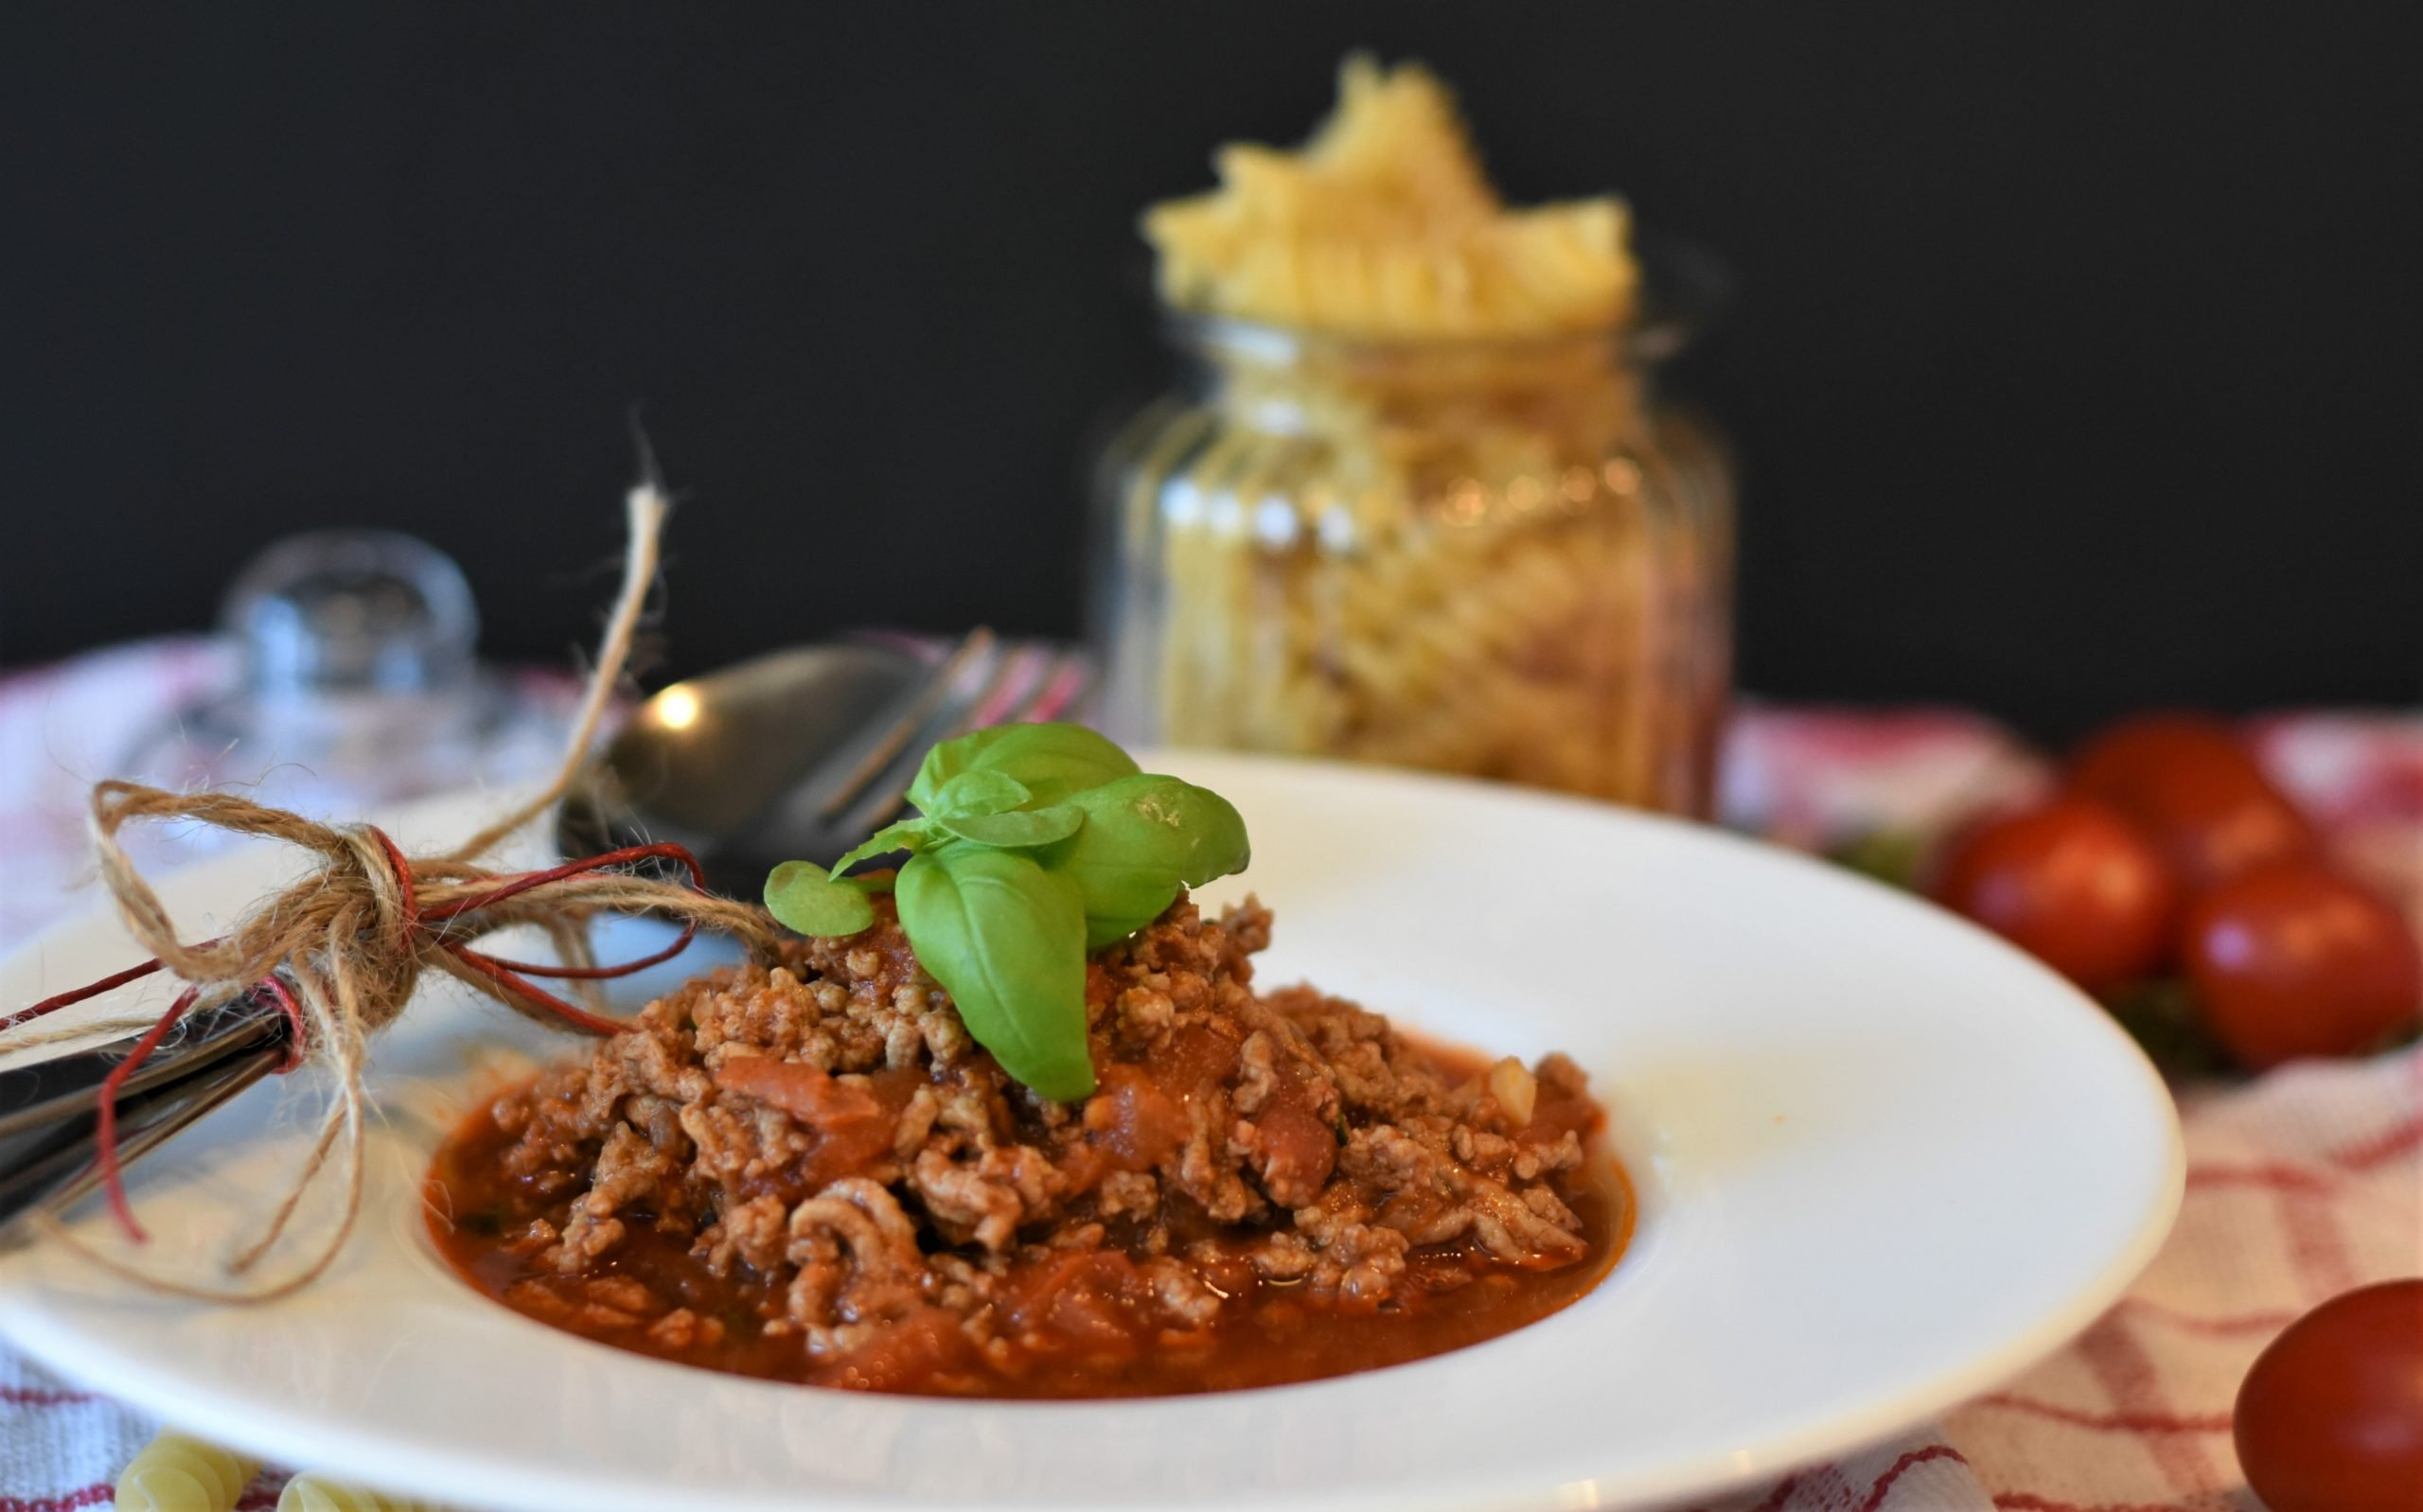 minced meat, minced meat sauce, bolognese